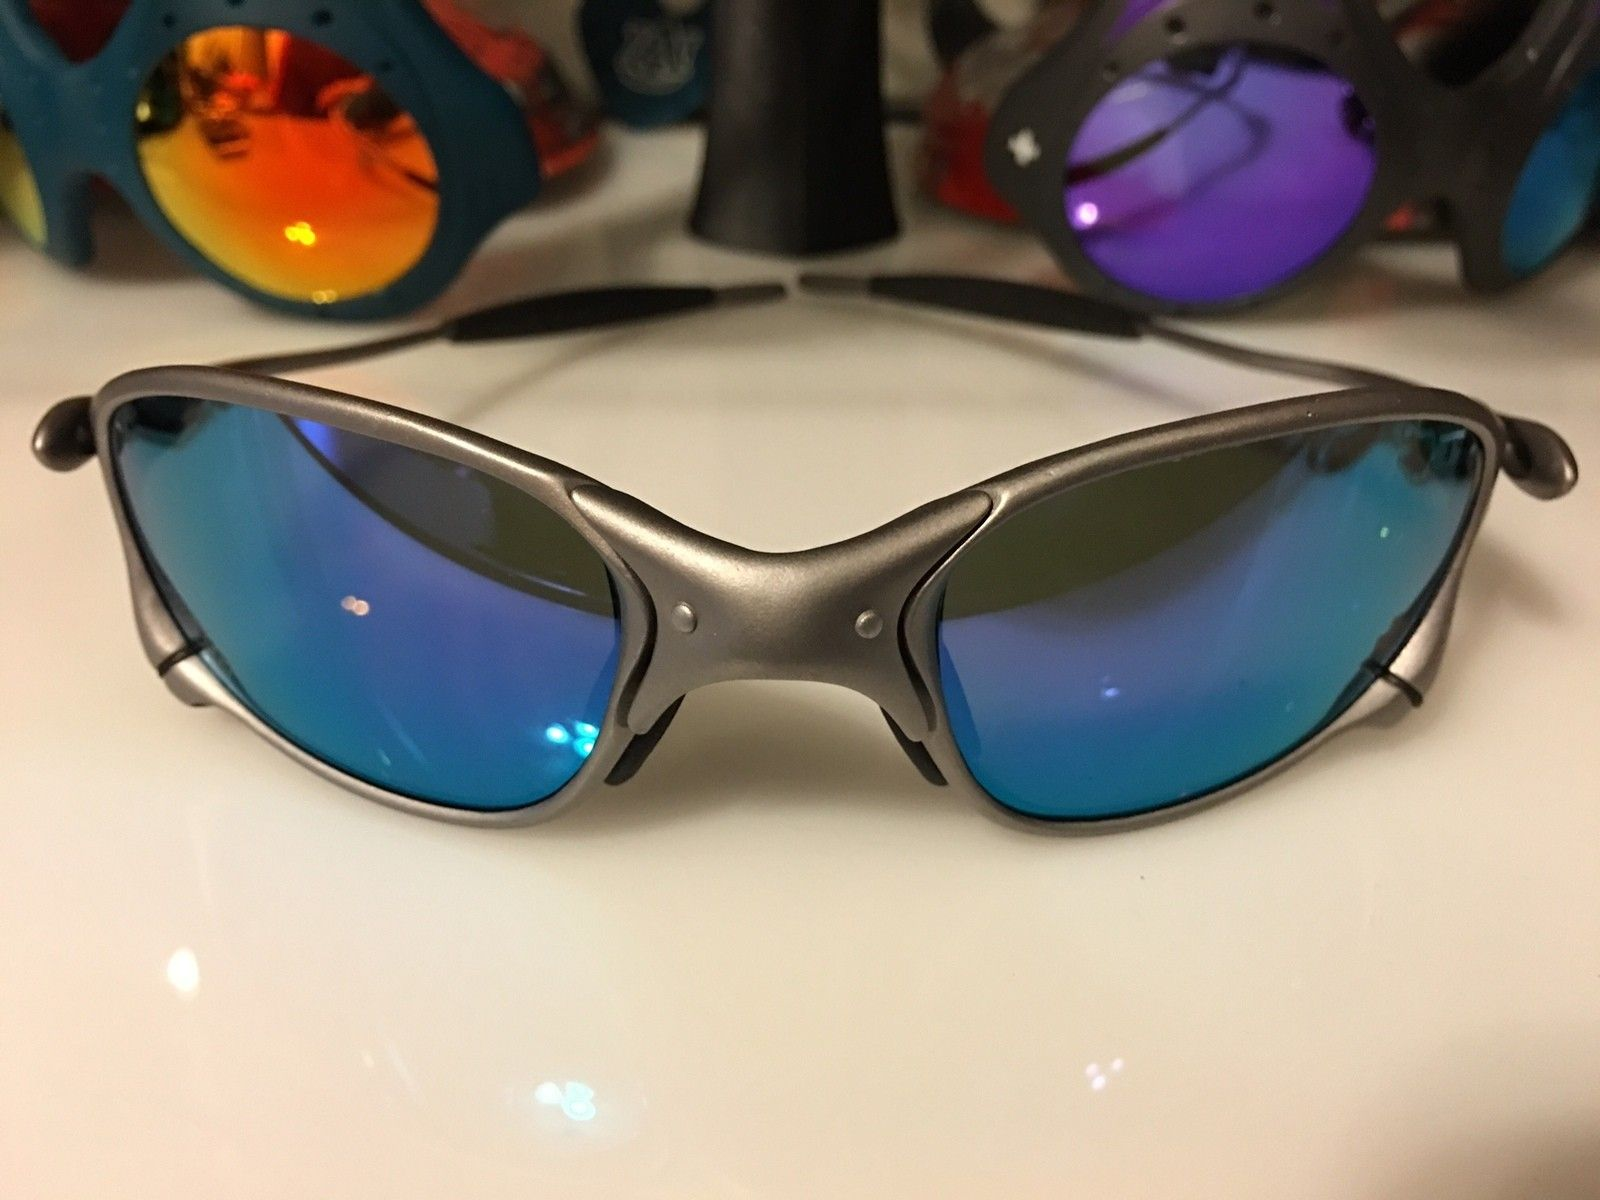 Two Pairs of XX (X-Man Plasma Refinish) with Lens Options - IMG_8446.JPG